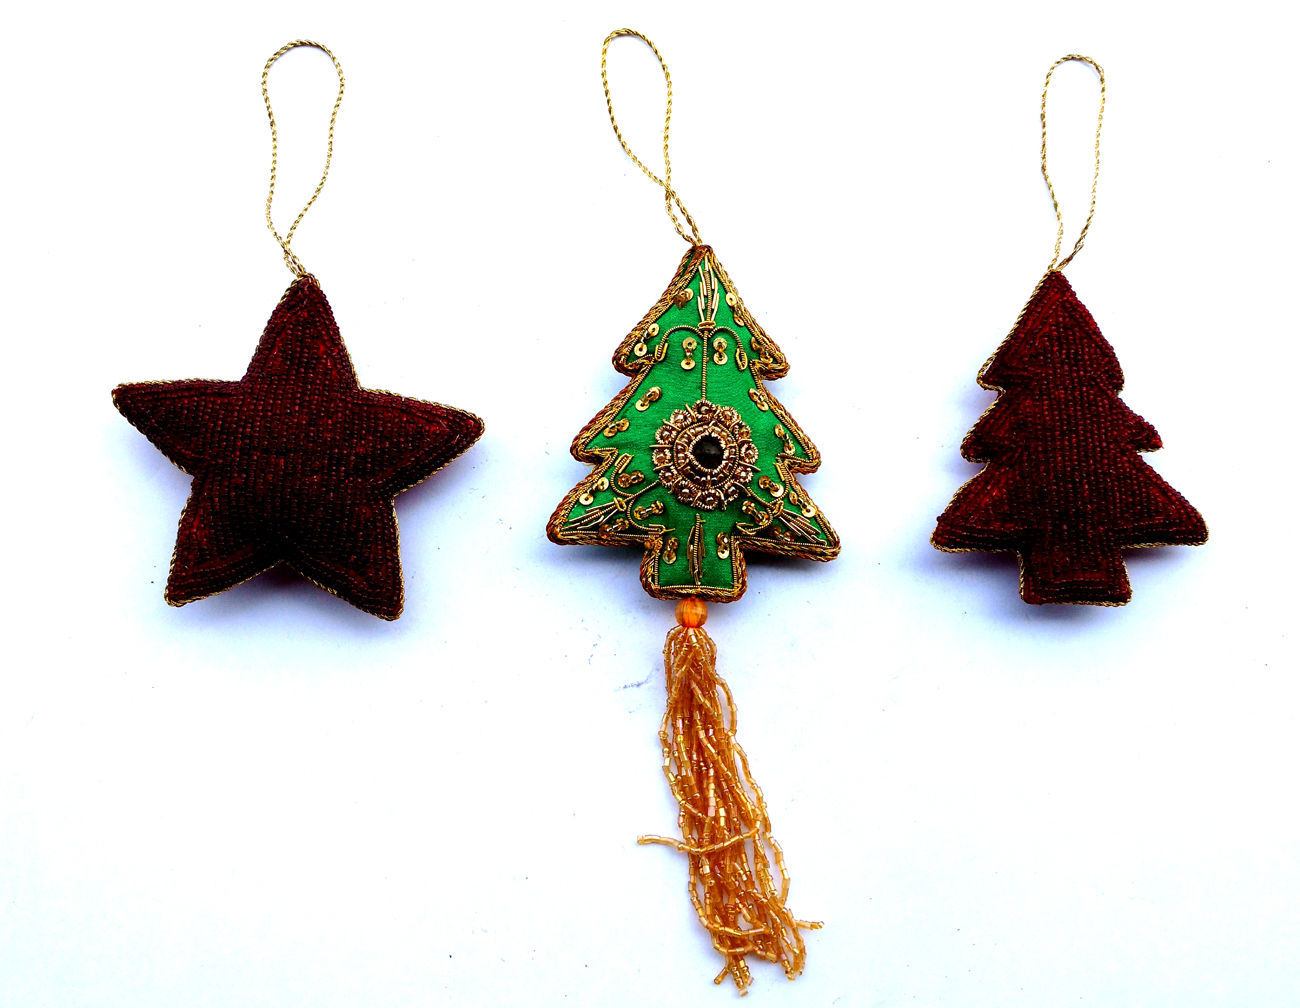 Febric Stars Ornament Tree Hanging Party Home Decor Xmas New Classic 3 Christmas